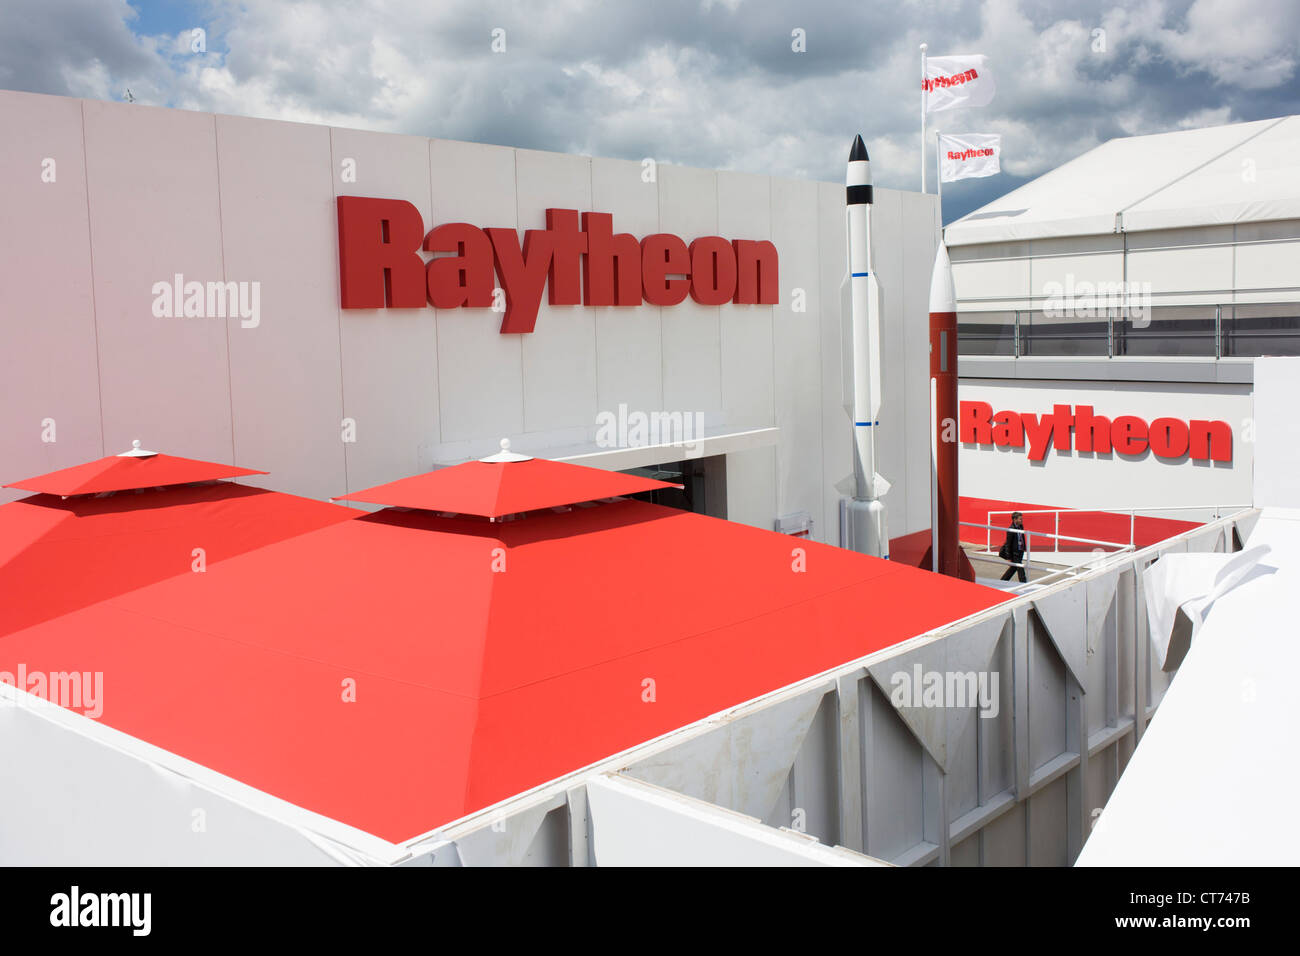 Model rockets at the Raytheon exhibition stand during the Farnborough airshow. - Stock Image